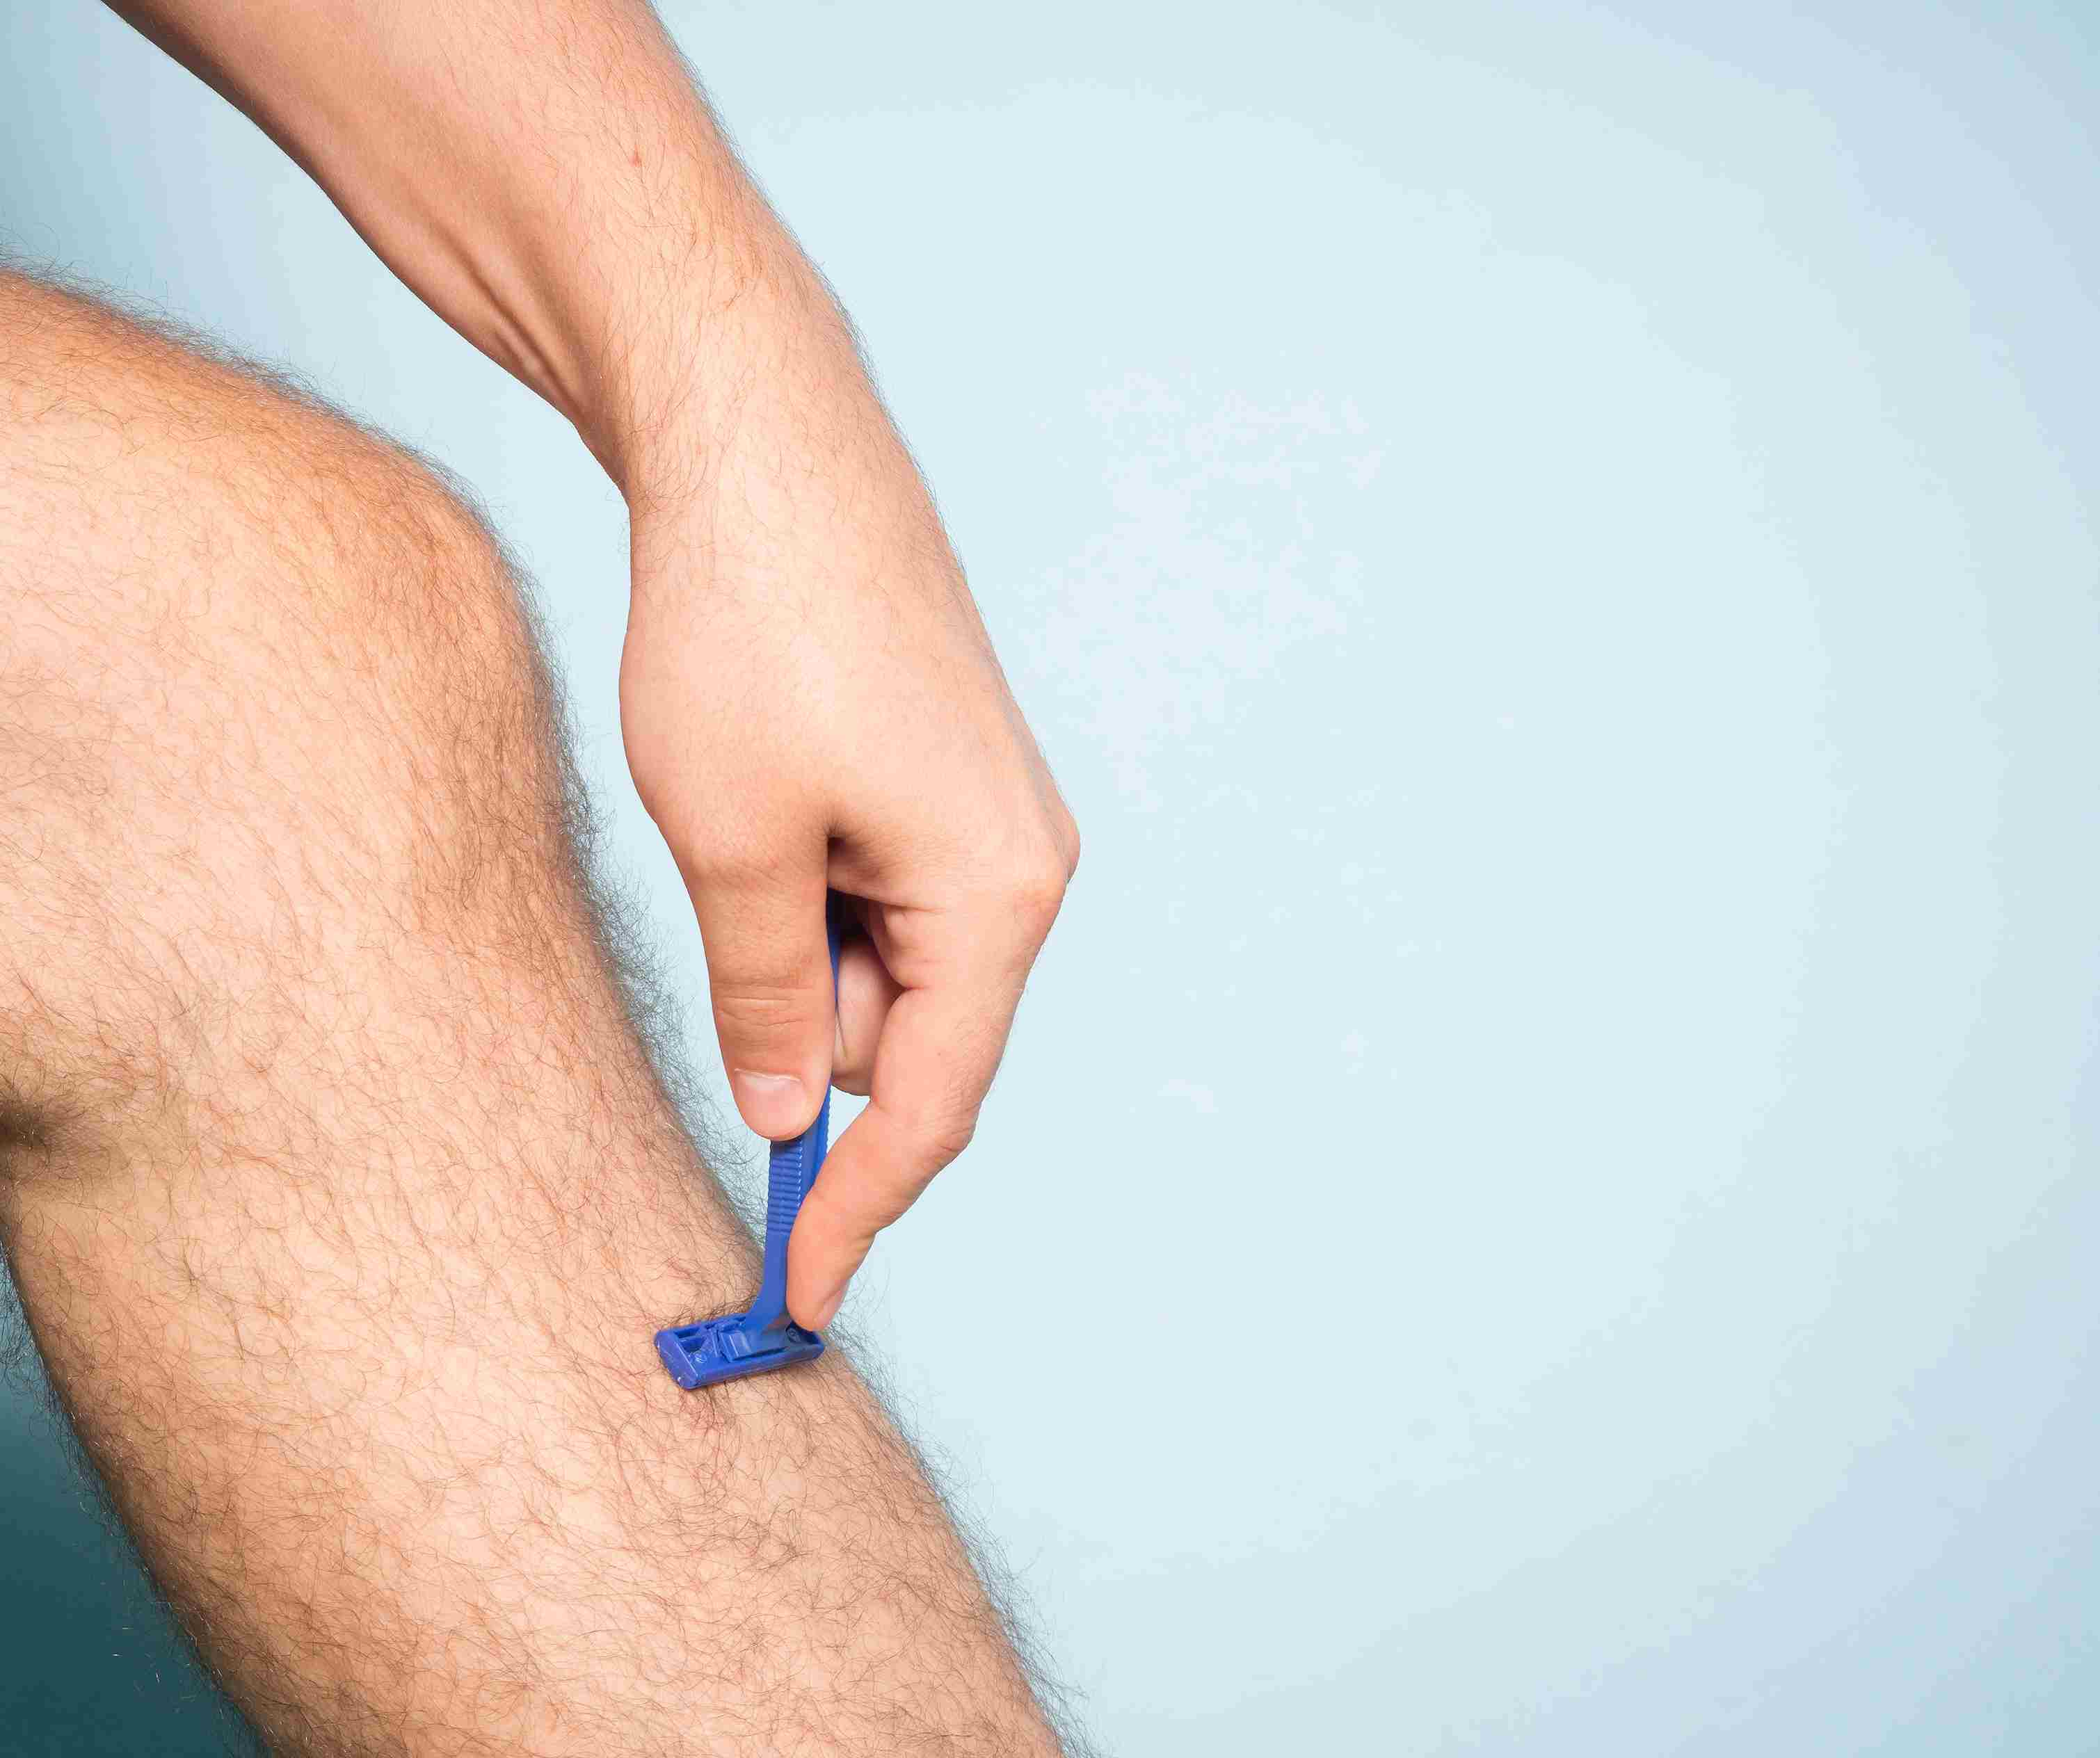 Body Hair Removal and Trimming Methods for Men